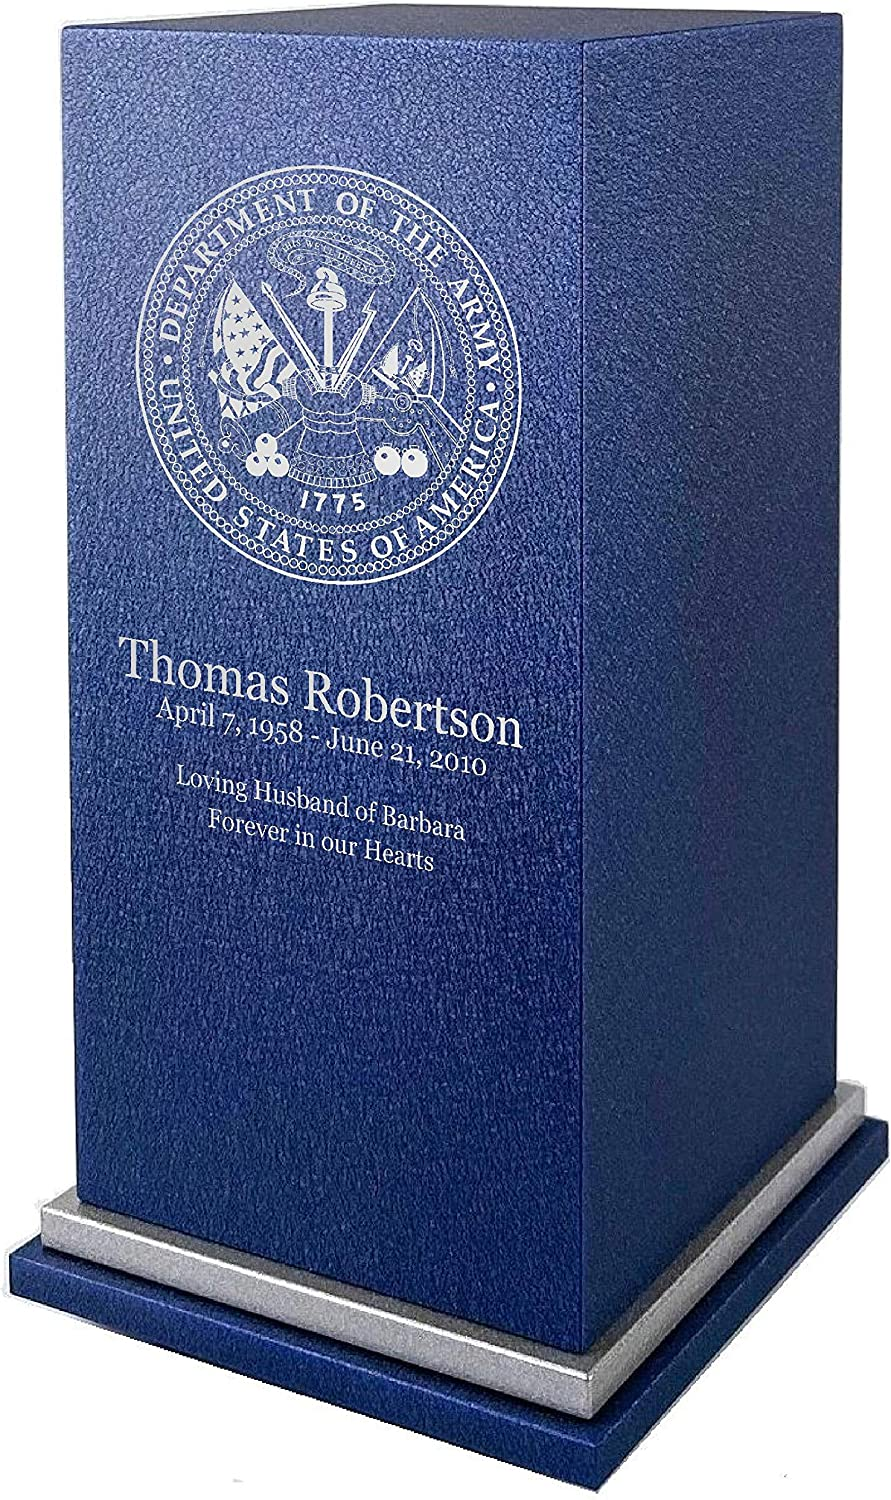 Max 49% OFF Amaranthine Urns - US Army Cremation with Urn Recommended Custom Engraving